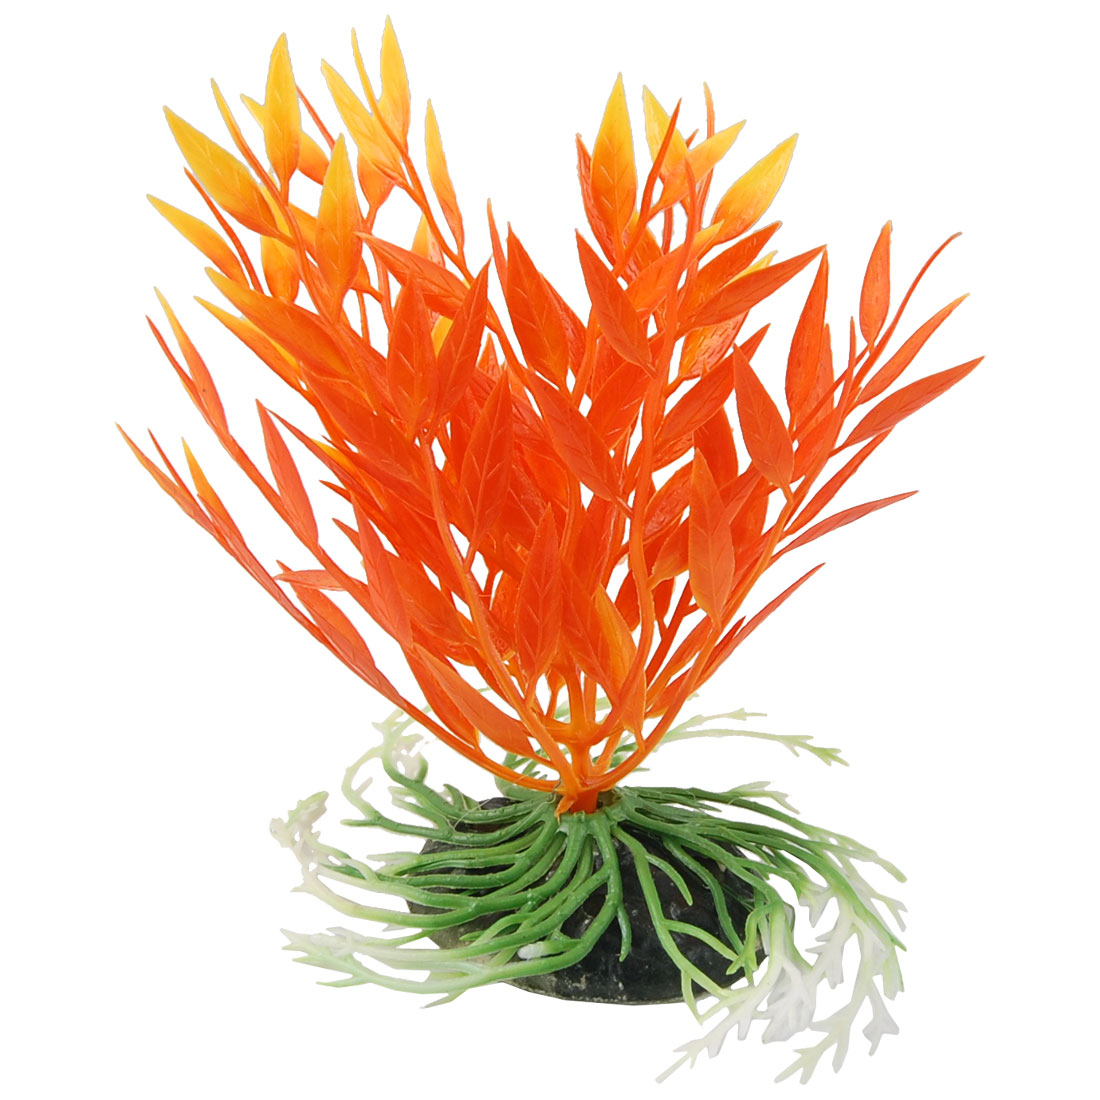 "Aquarium Plastic Plant Decoration Orange Red Green 5.5"" w Ceramic Base"